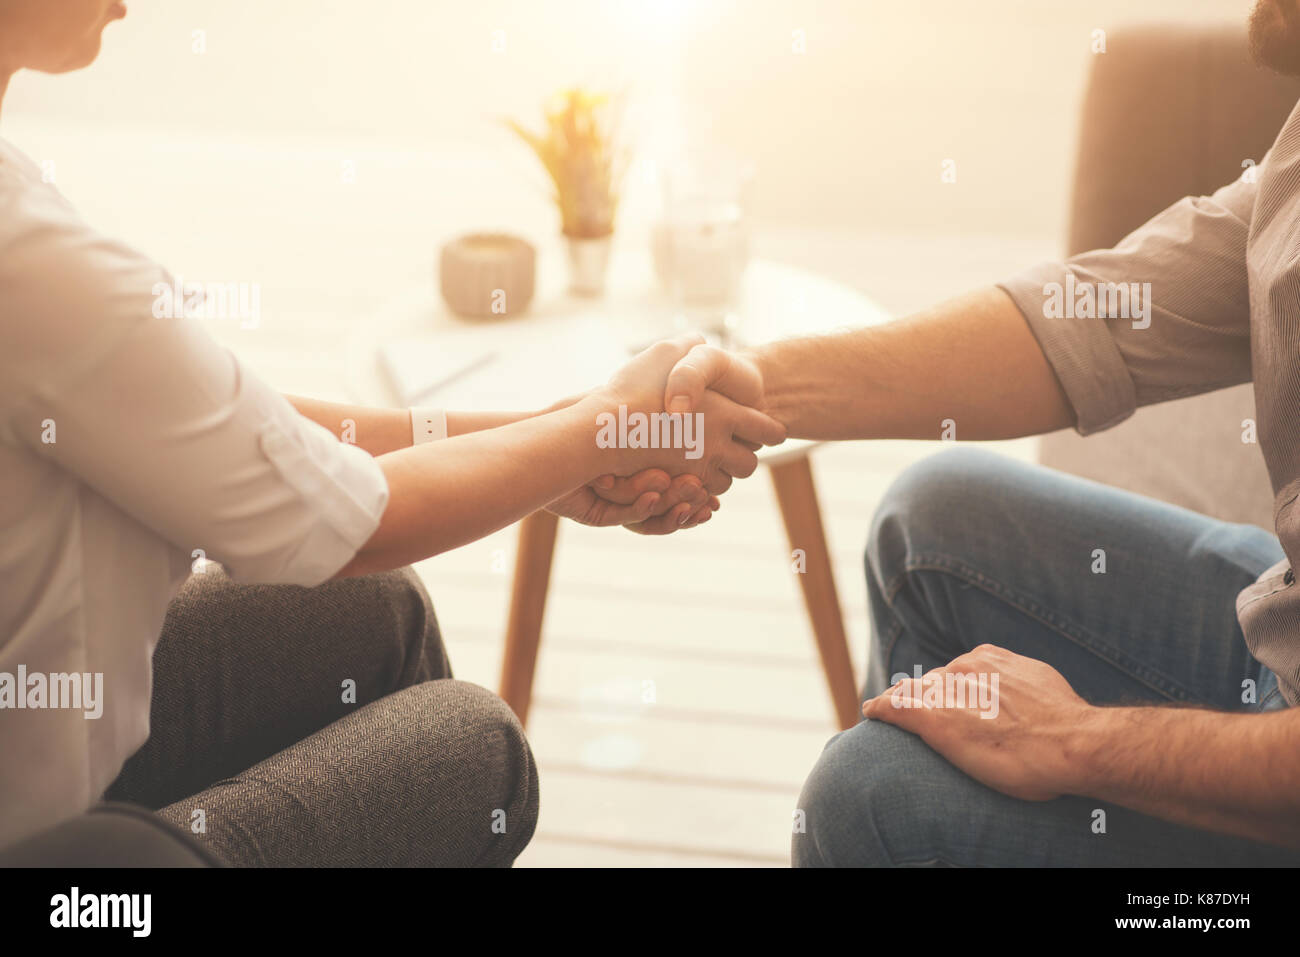 Pleasant nice people greeting each other - Stock Image